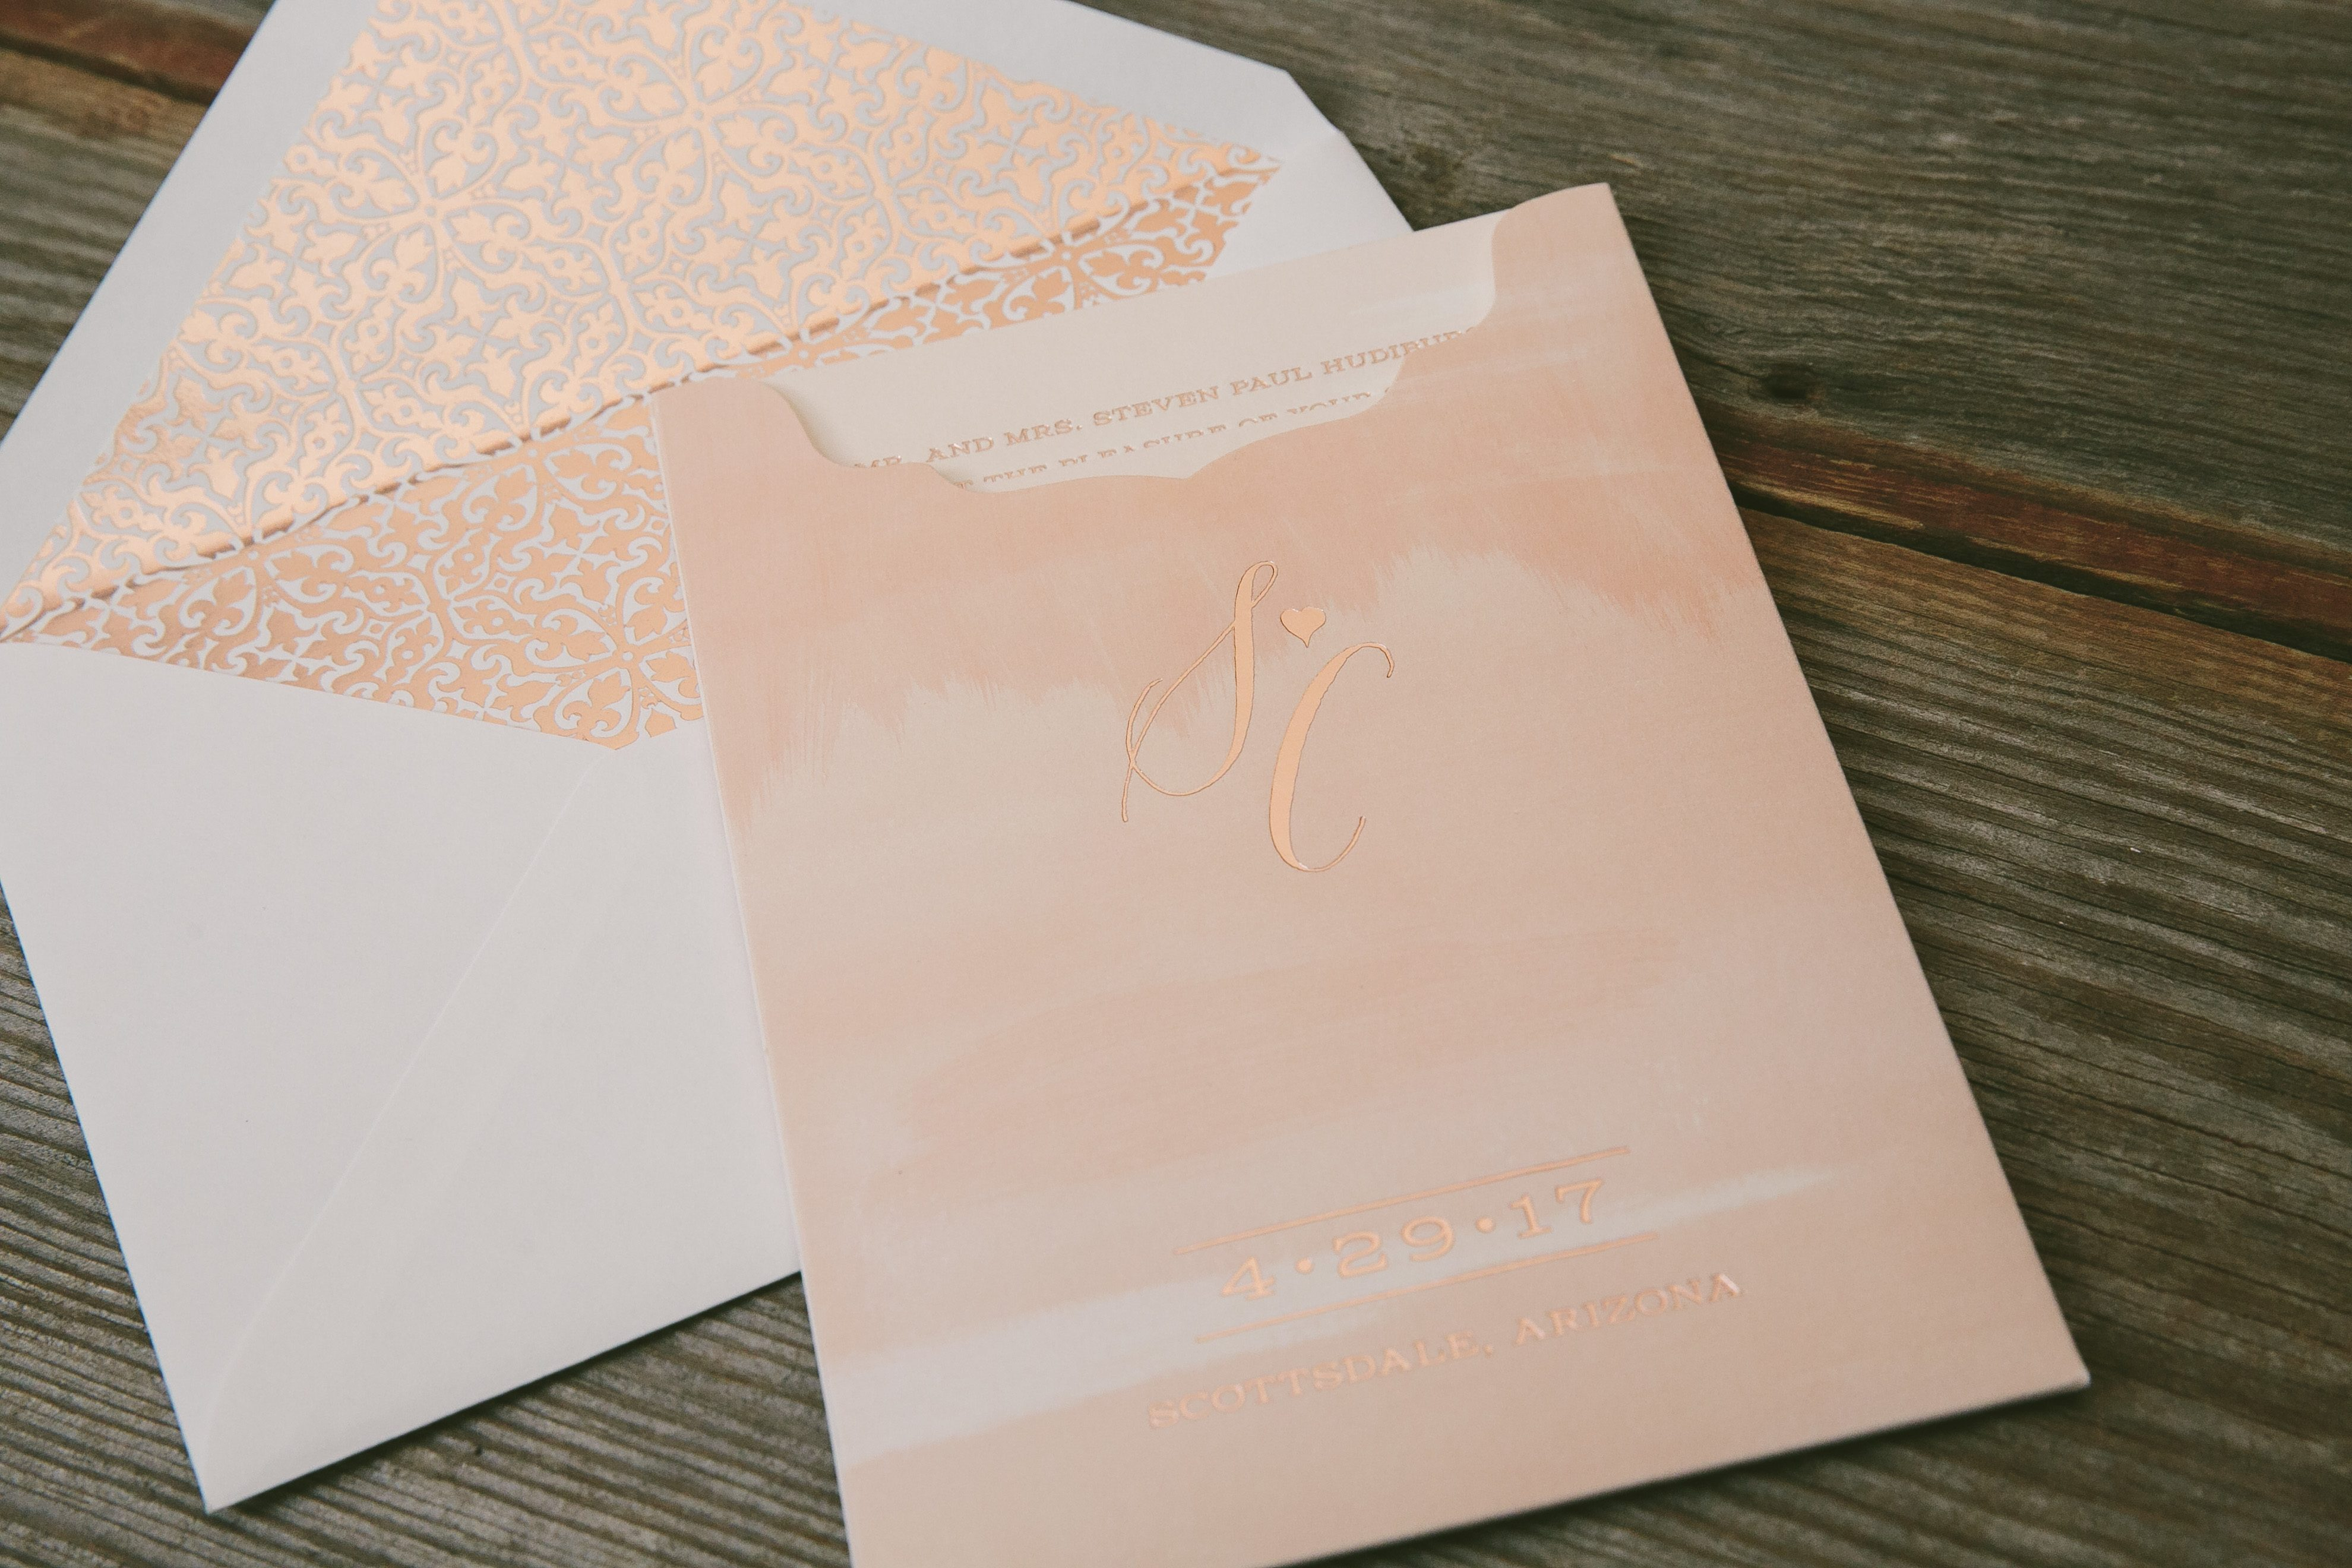 Foil stamping color rose gold shine digital ink color cmyk fonts durham covington paper 2 ply white bamboo 1 ply white bamboo size s8